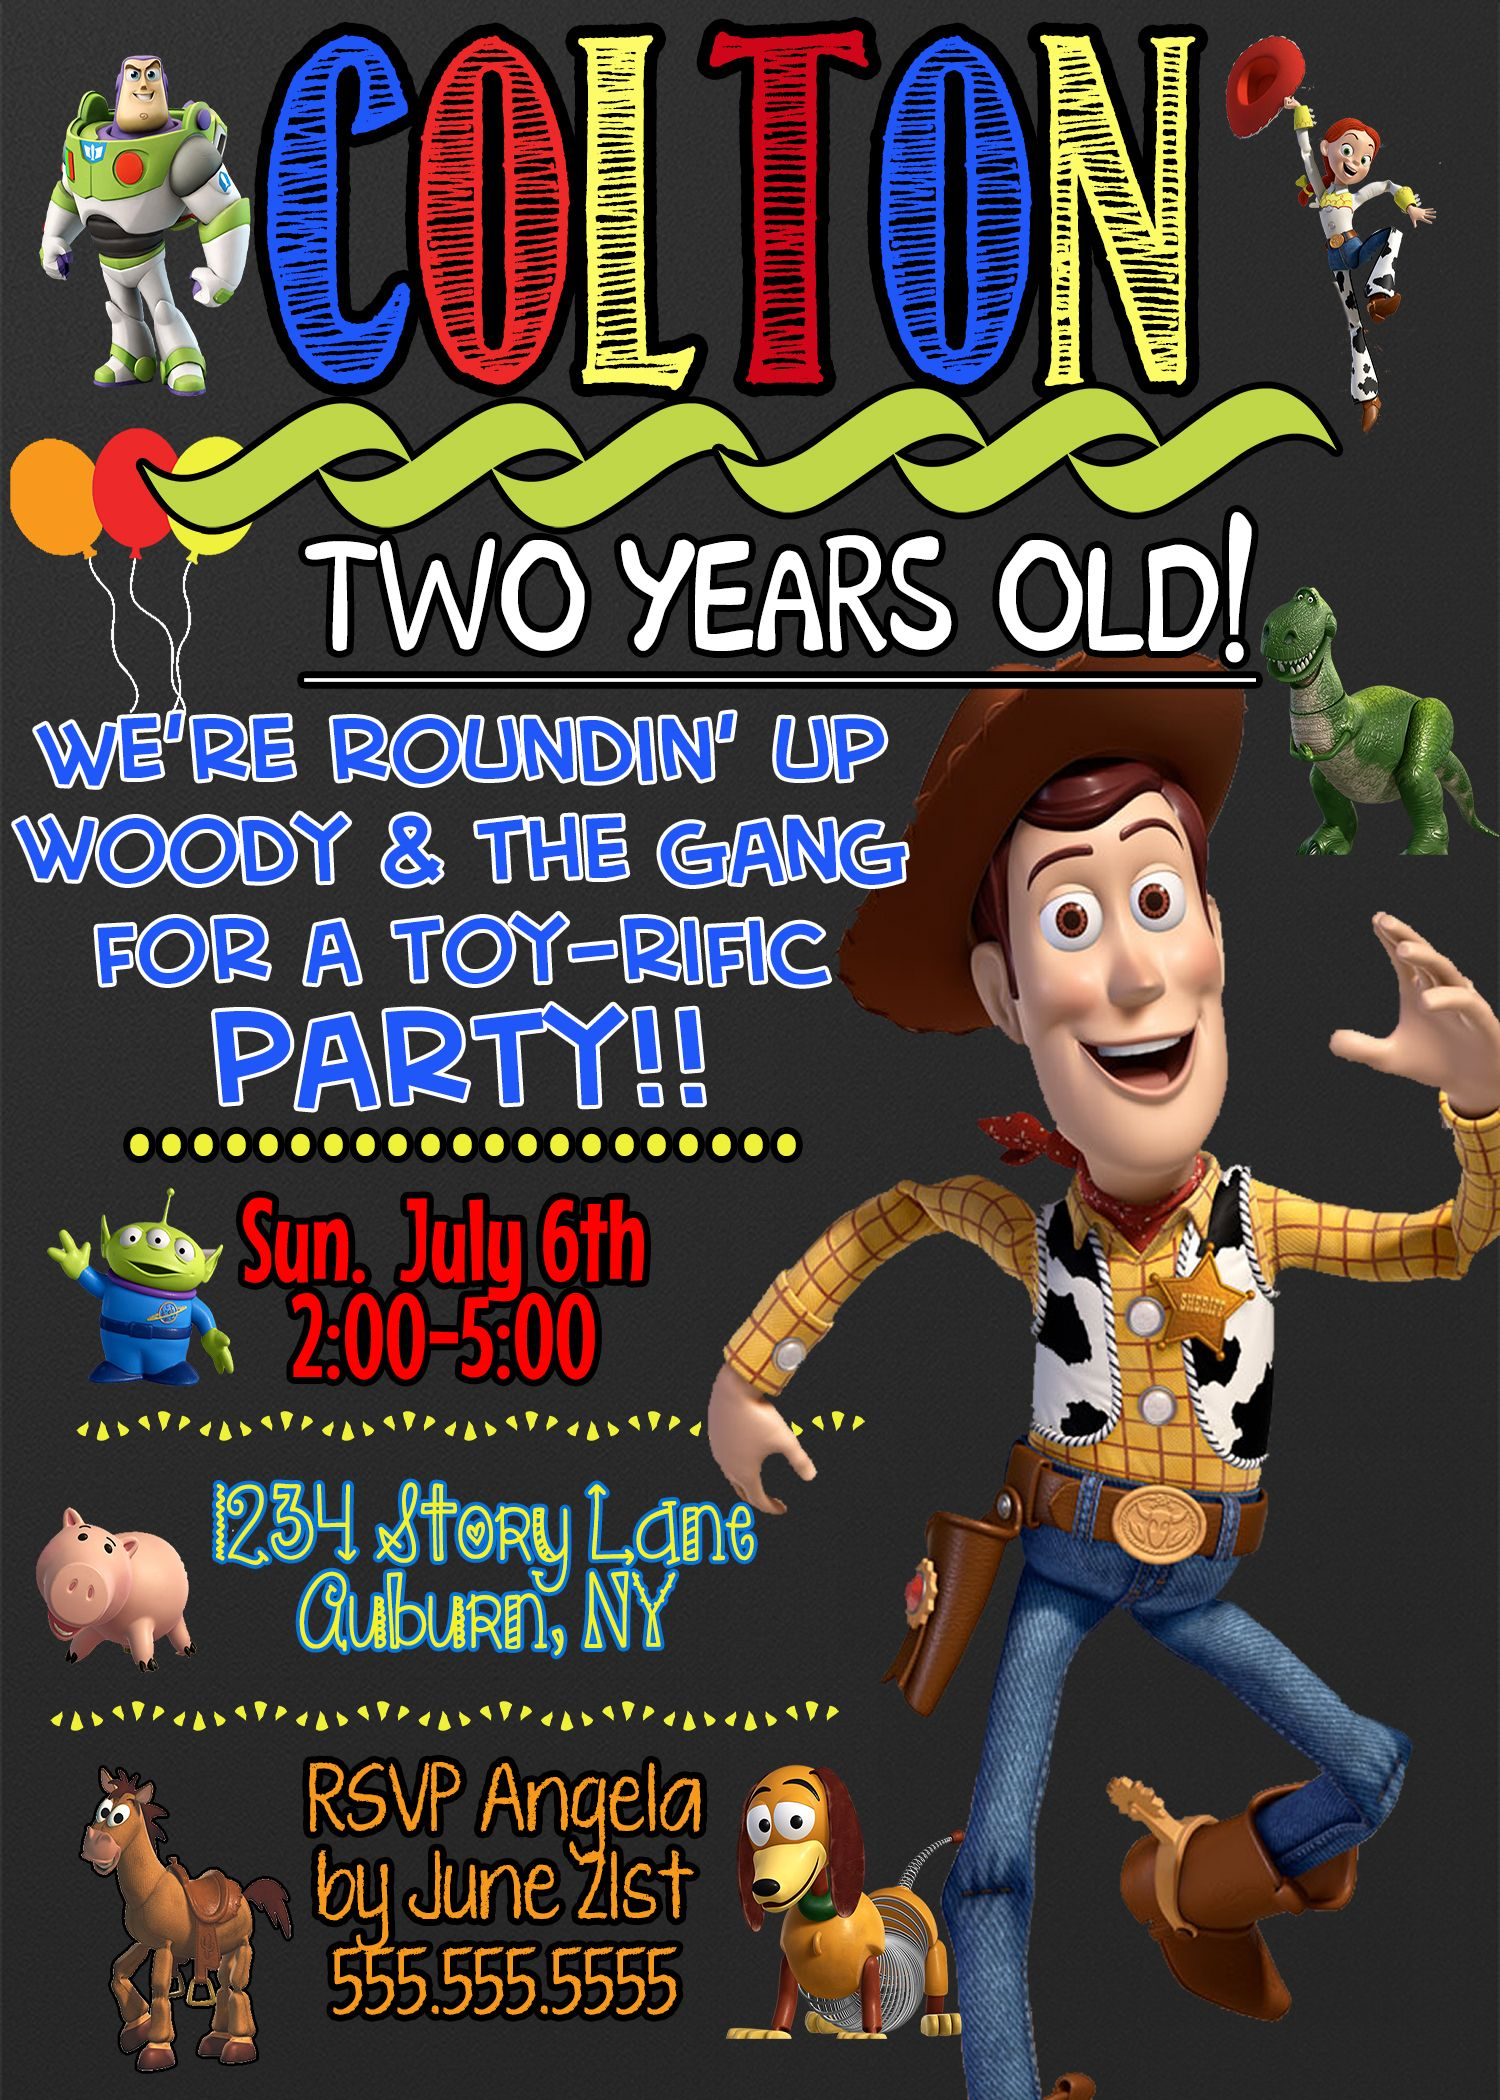 Up Up and away toy story birthday invites chalkboard style | Kids ...